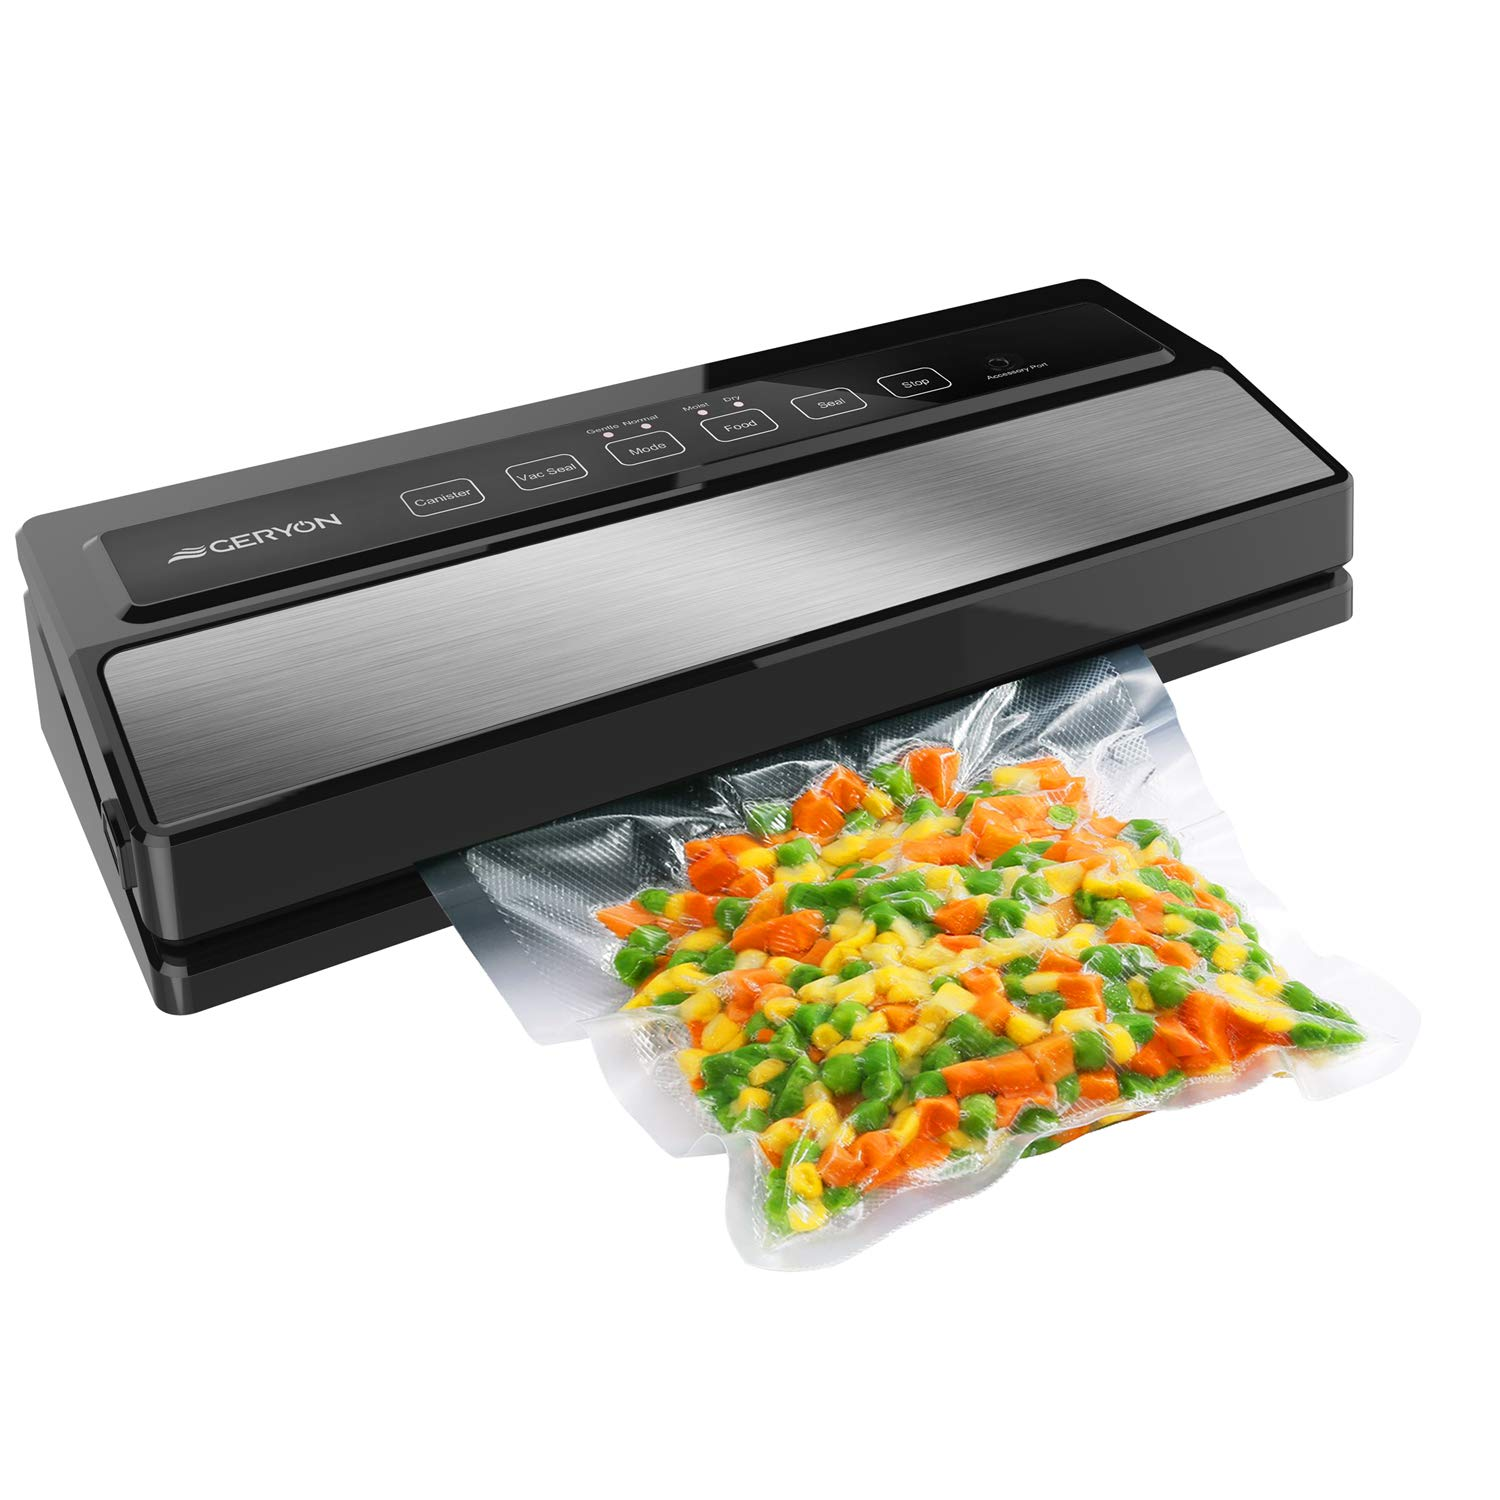 GERYON Vacuum Sealer Machine, Automatic Food Sealer for Food Savers w/Starter Kit|Led Indicator Lights|Easy to Clean|Dry & Moist Food Modes| Compact ...